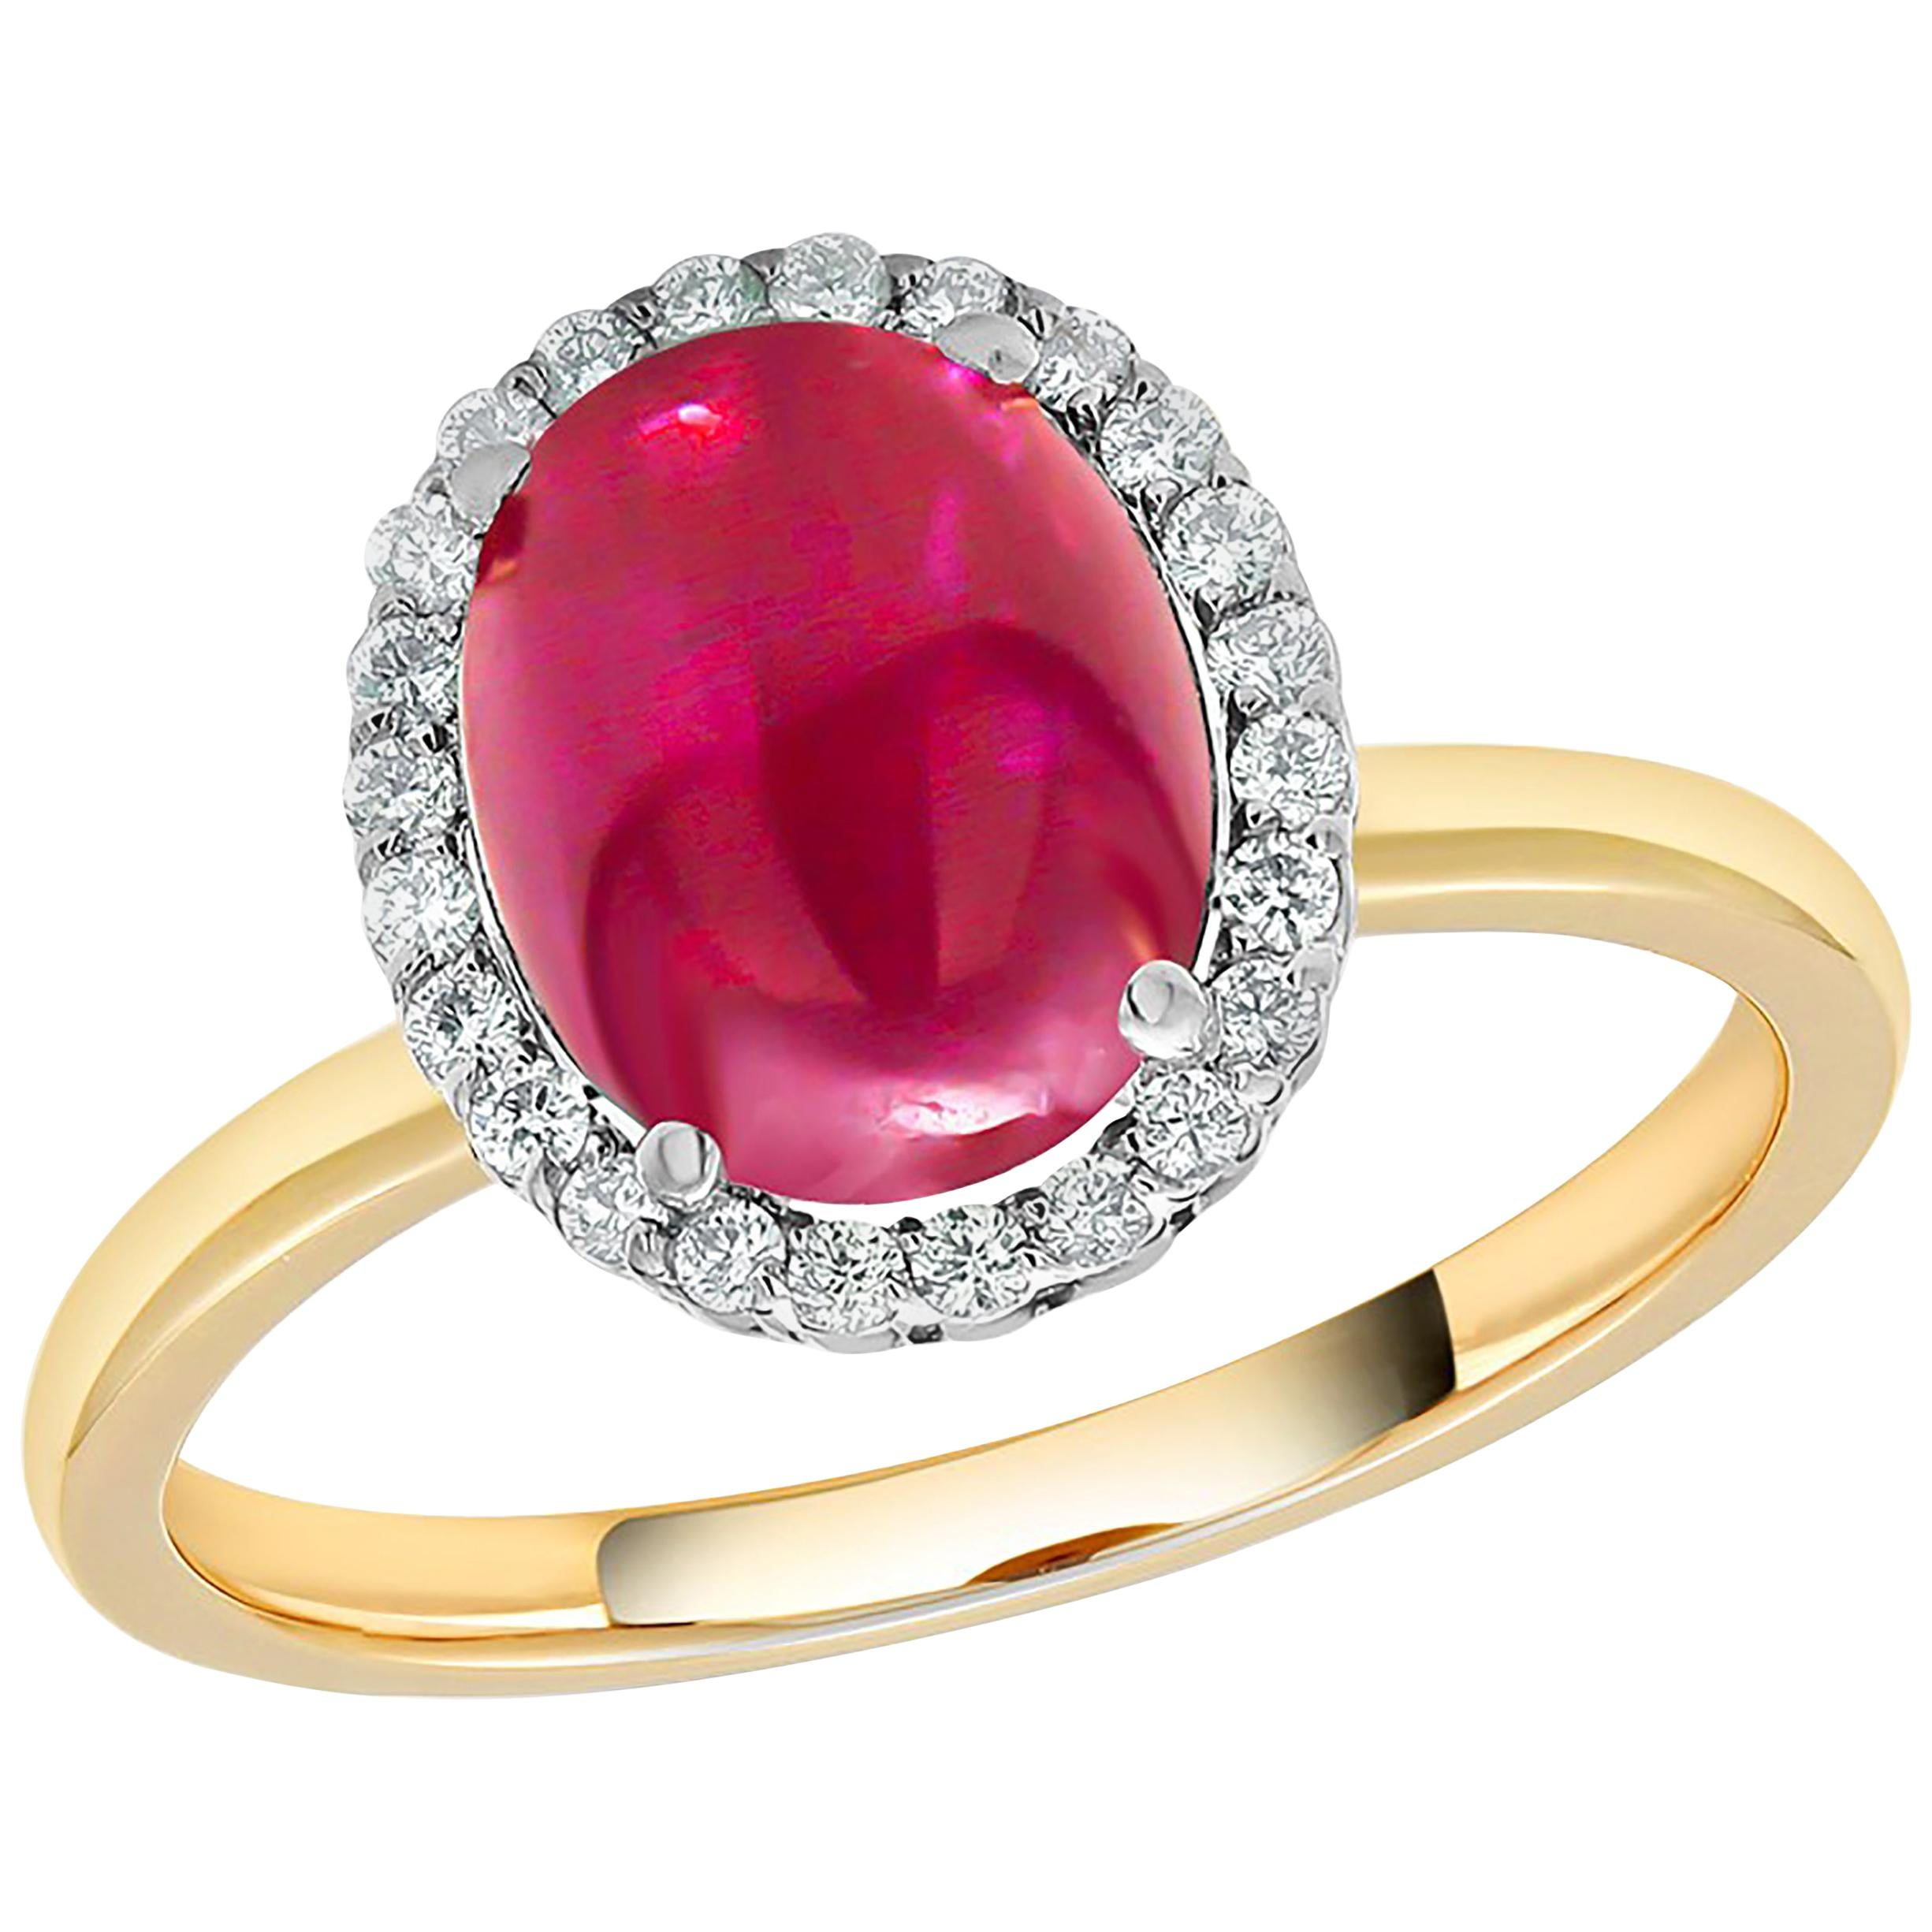 Cabochon Ruby and Diamond Gold Cocktail Ring Weighing 6.26 Carat